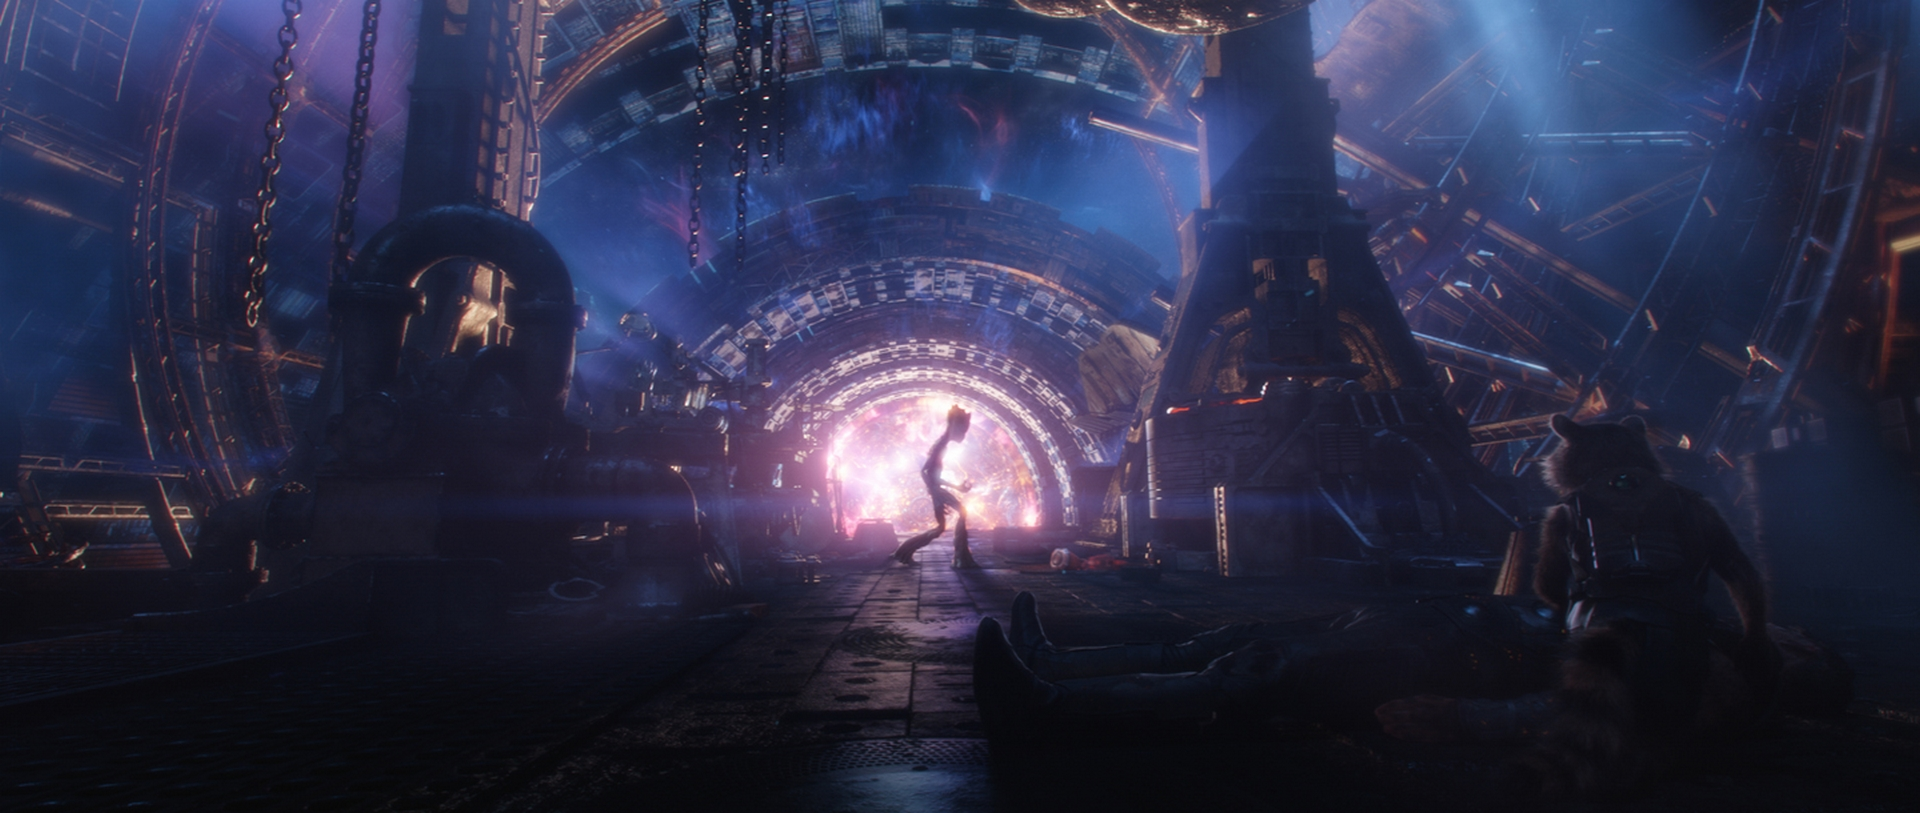 CategorySpace Stations Marvel Cinematic Universe Wiki